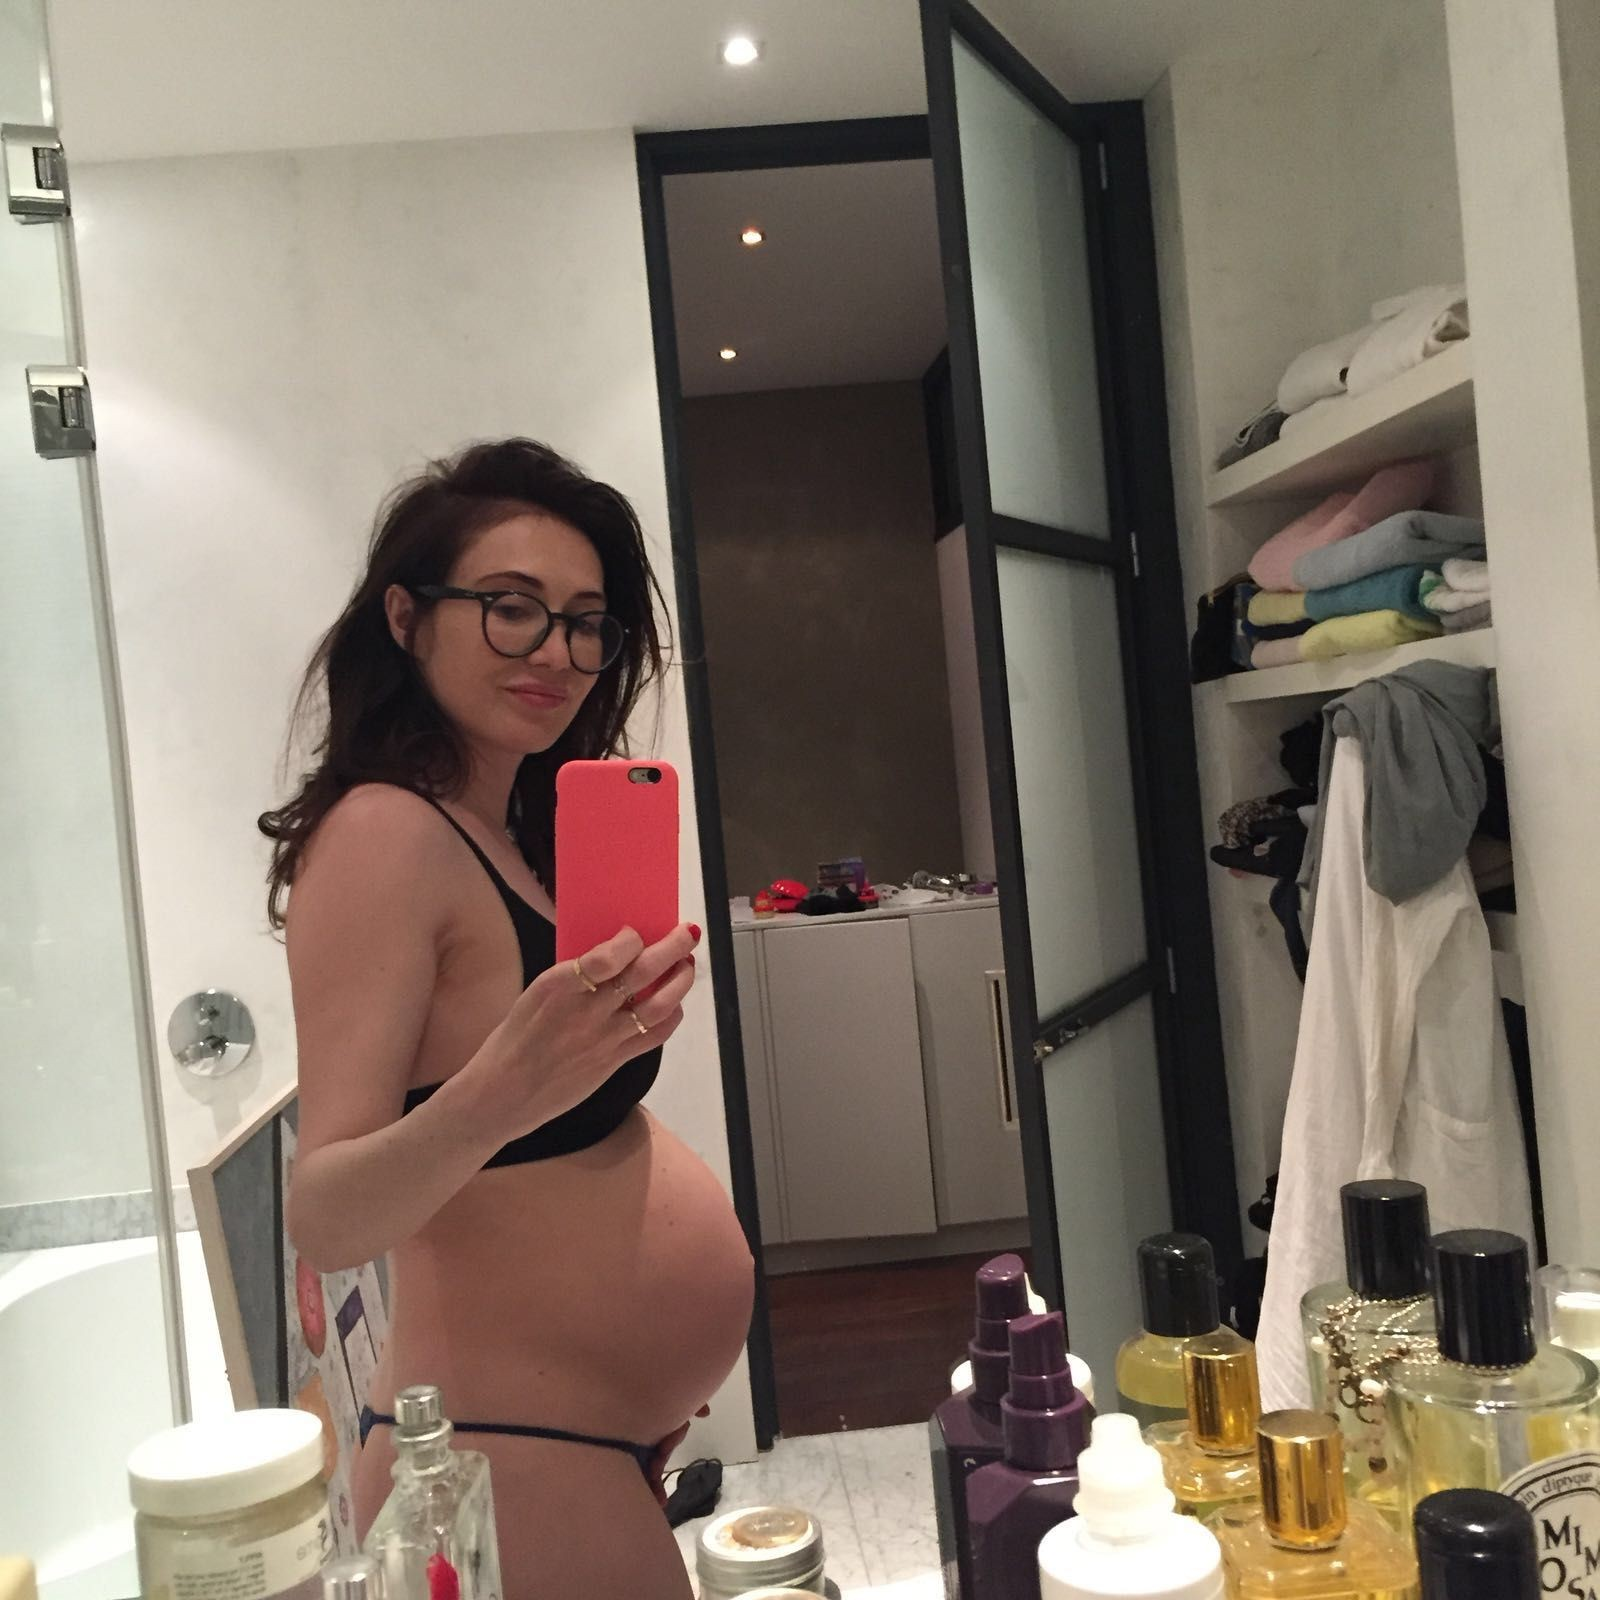 Carice Van Houten nude pregnant photos leaked The Fappening